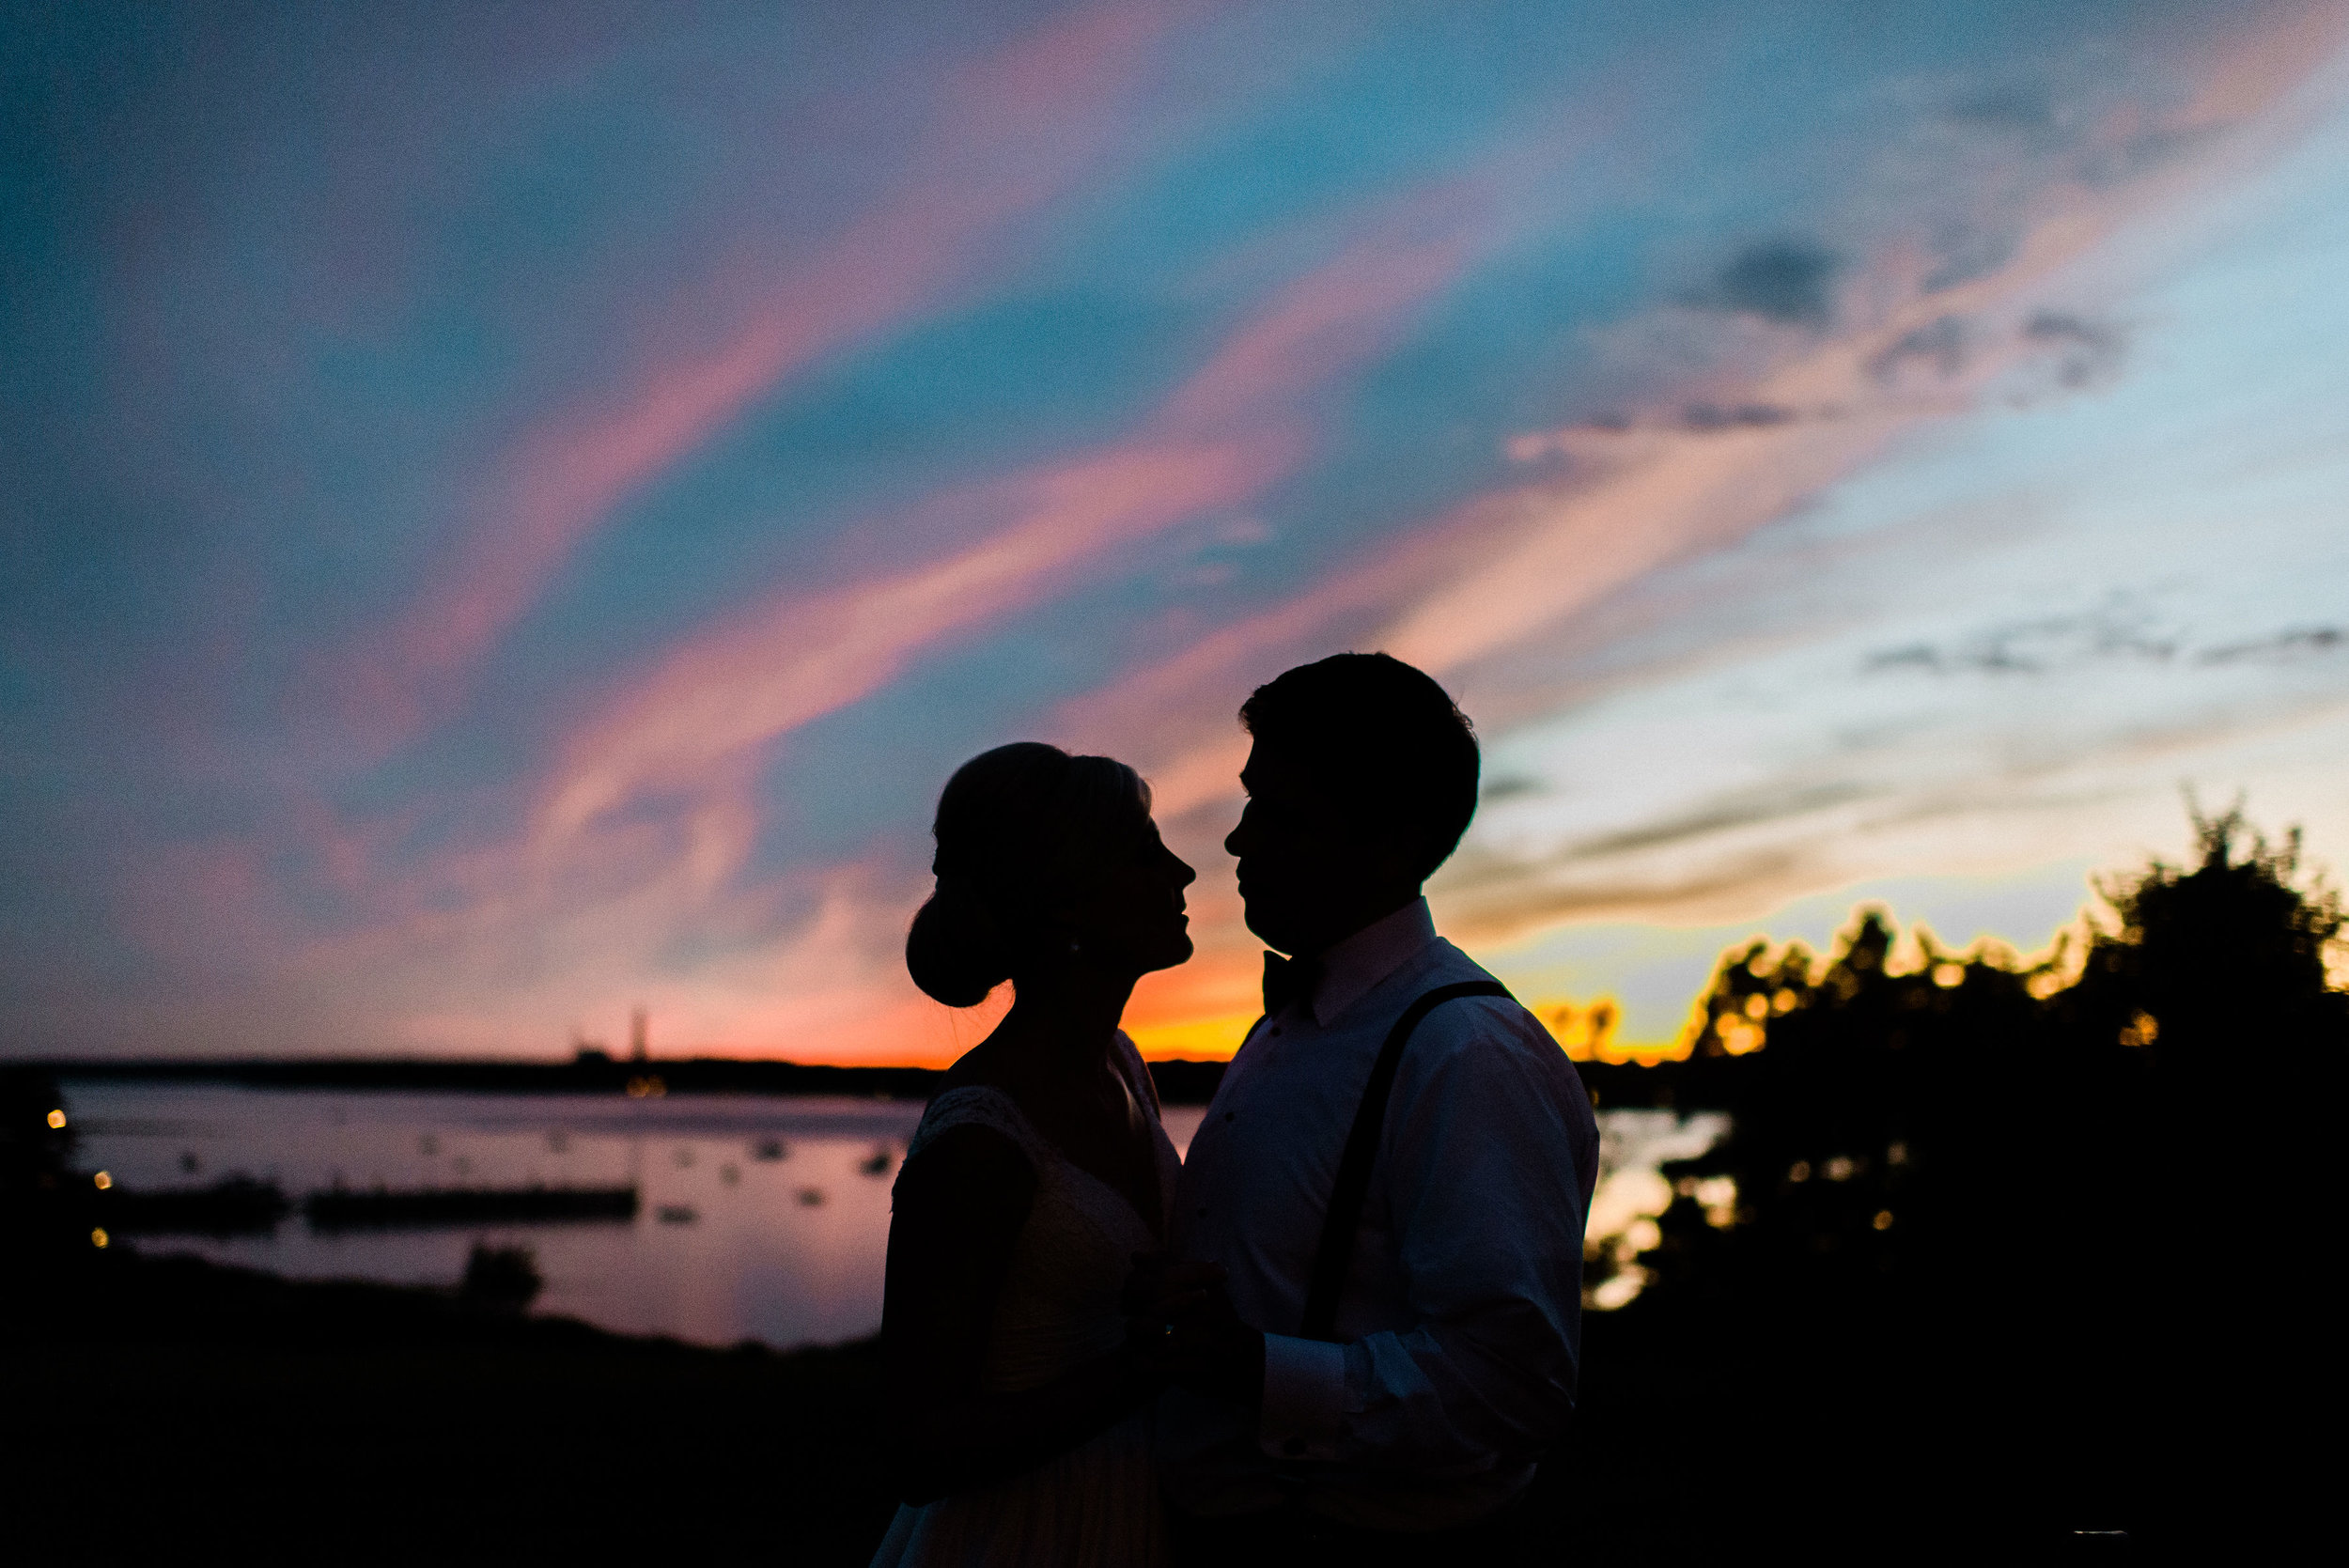 Alexandra-Elise-Photography-Ali-Reed-Chebeague-Island-Maine-Film-Wedding-Photographer-Elizabeth-Josh-Wedding-Bride-Groom-133.jpg